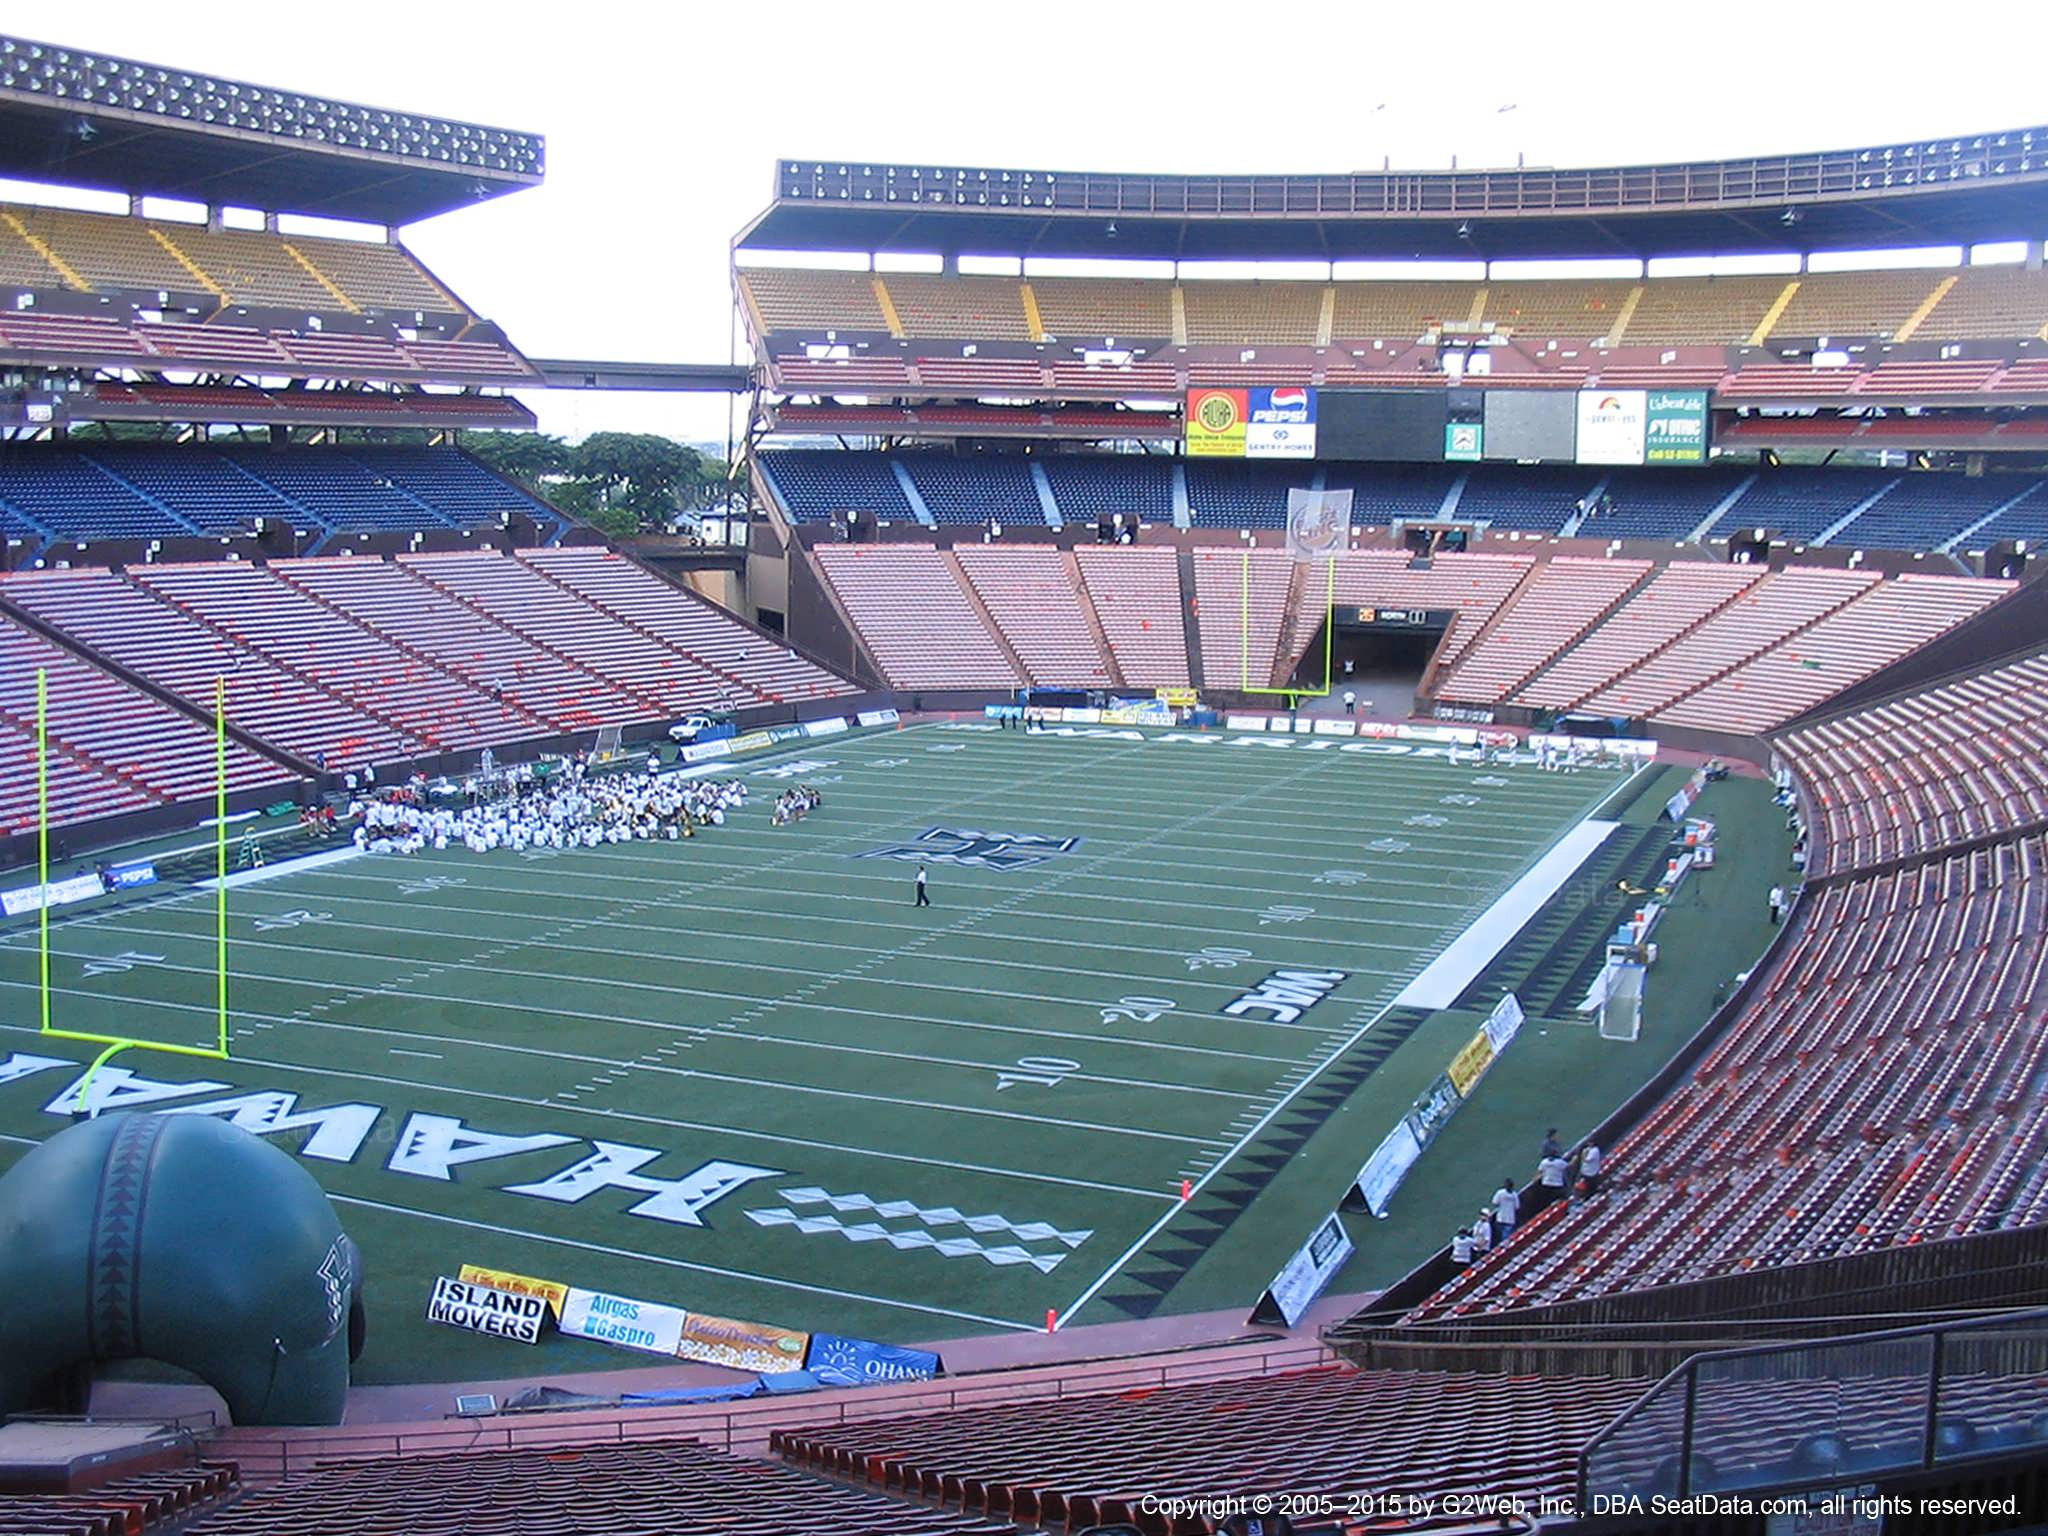 Seat View for Aloha Stadium Blue DD